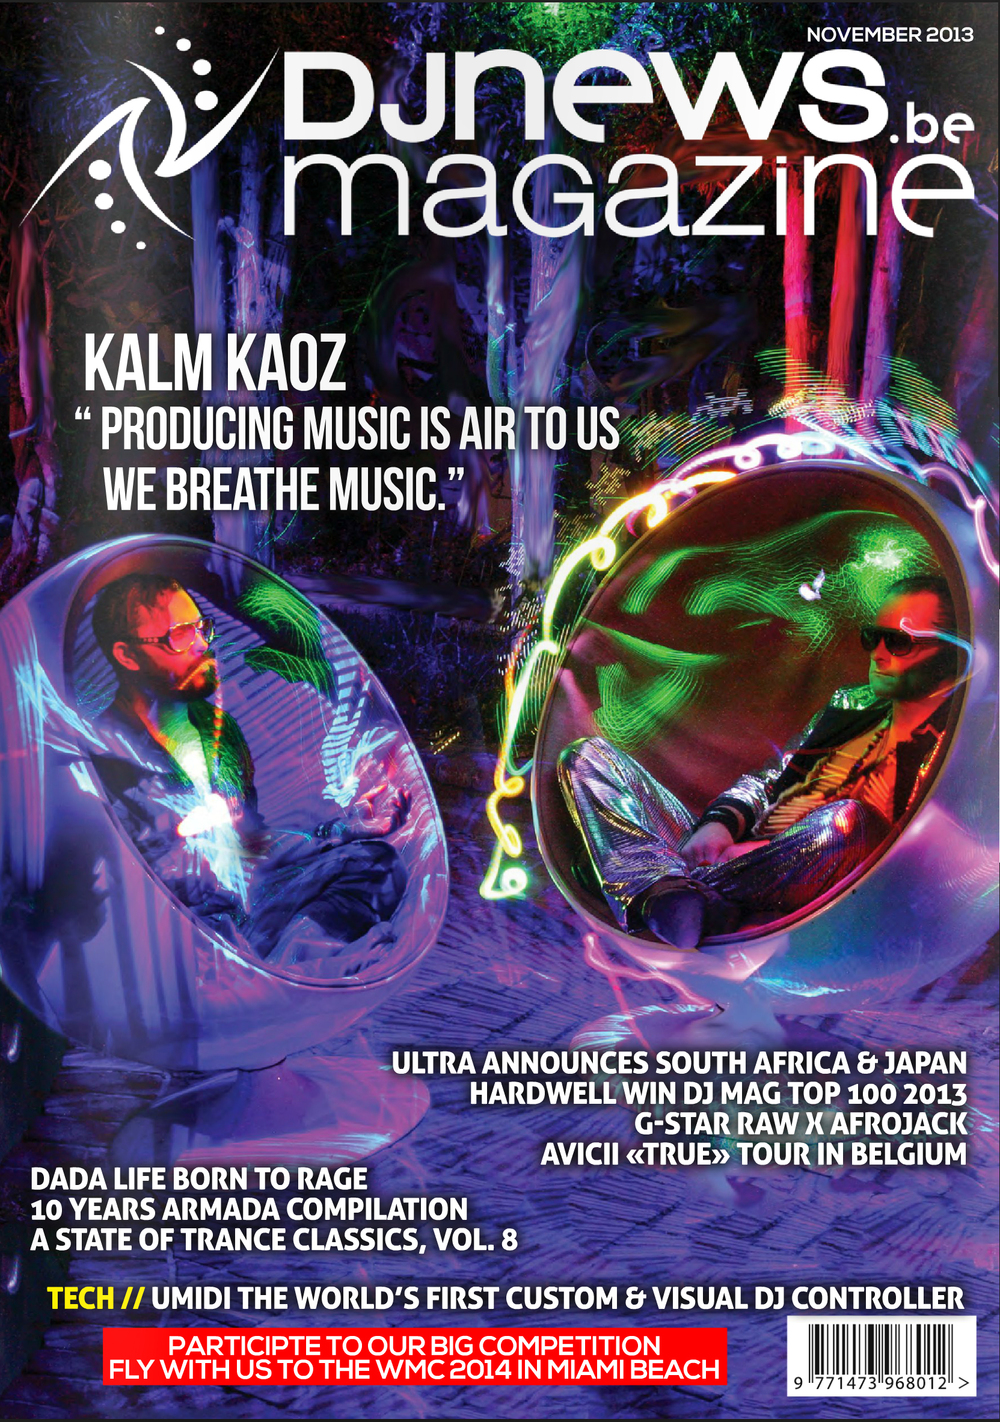 2 Harmonic Light Photos Put together into one AWESOME COVER OF DJ NEWS MAGAZINE!! November 2013